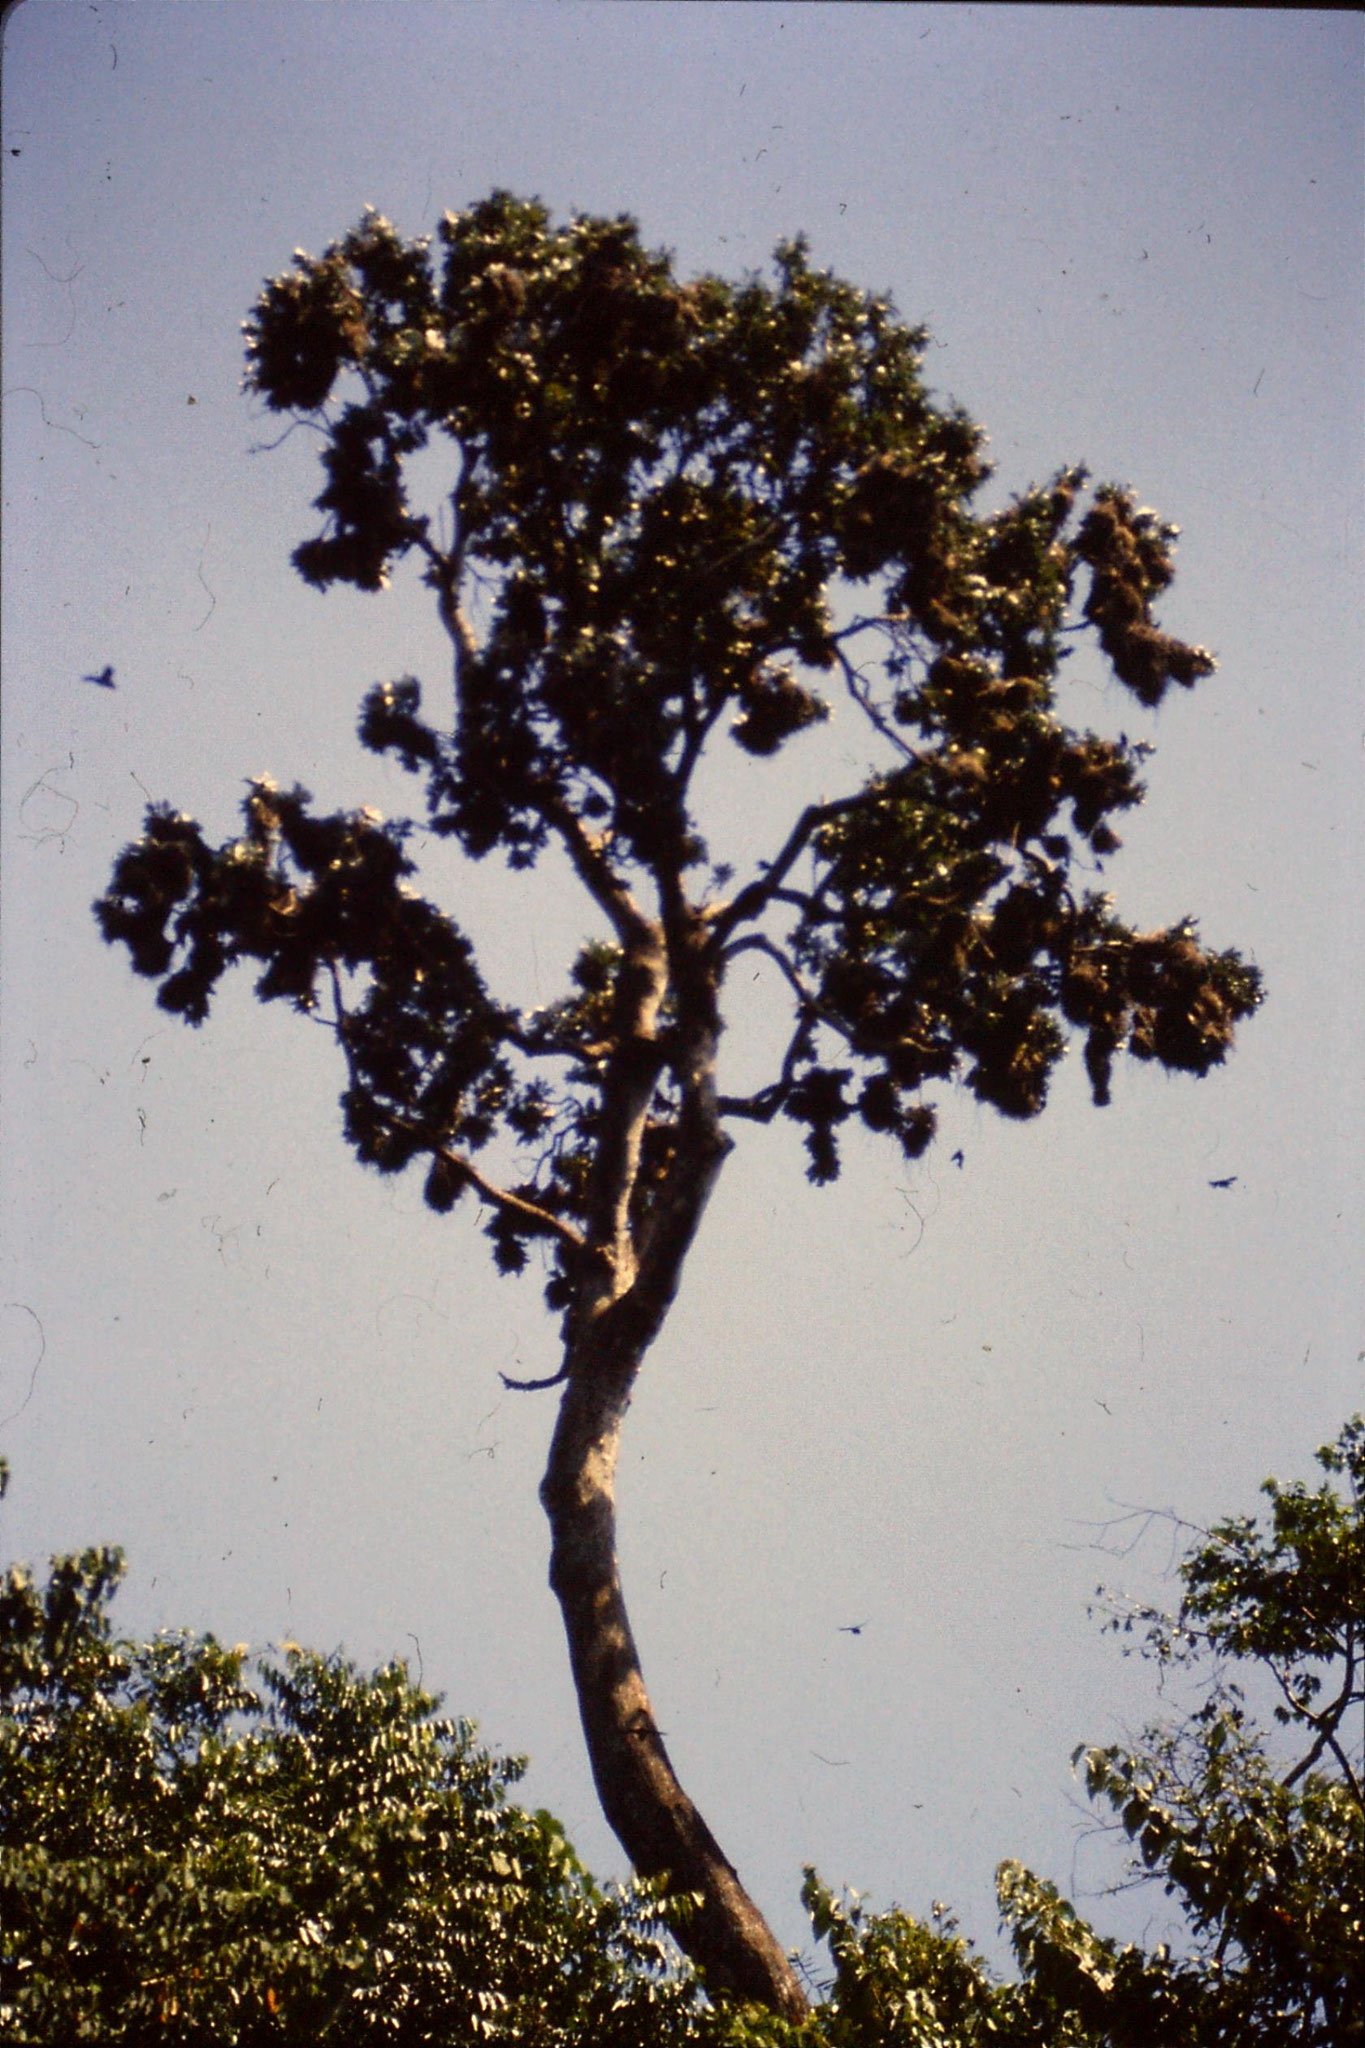 26/10/1990: 17: Cape Tribulation, metallic starling nest colony